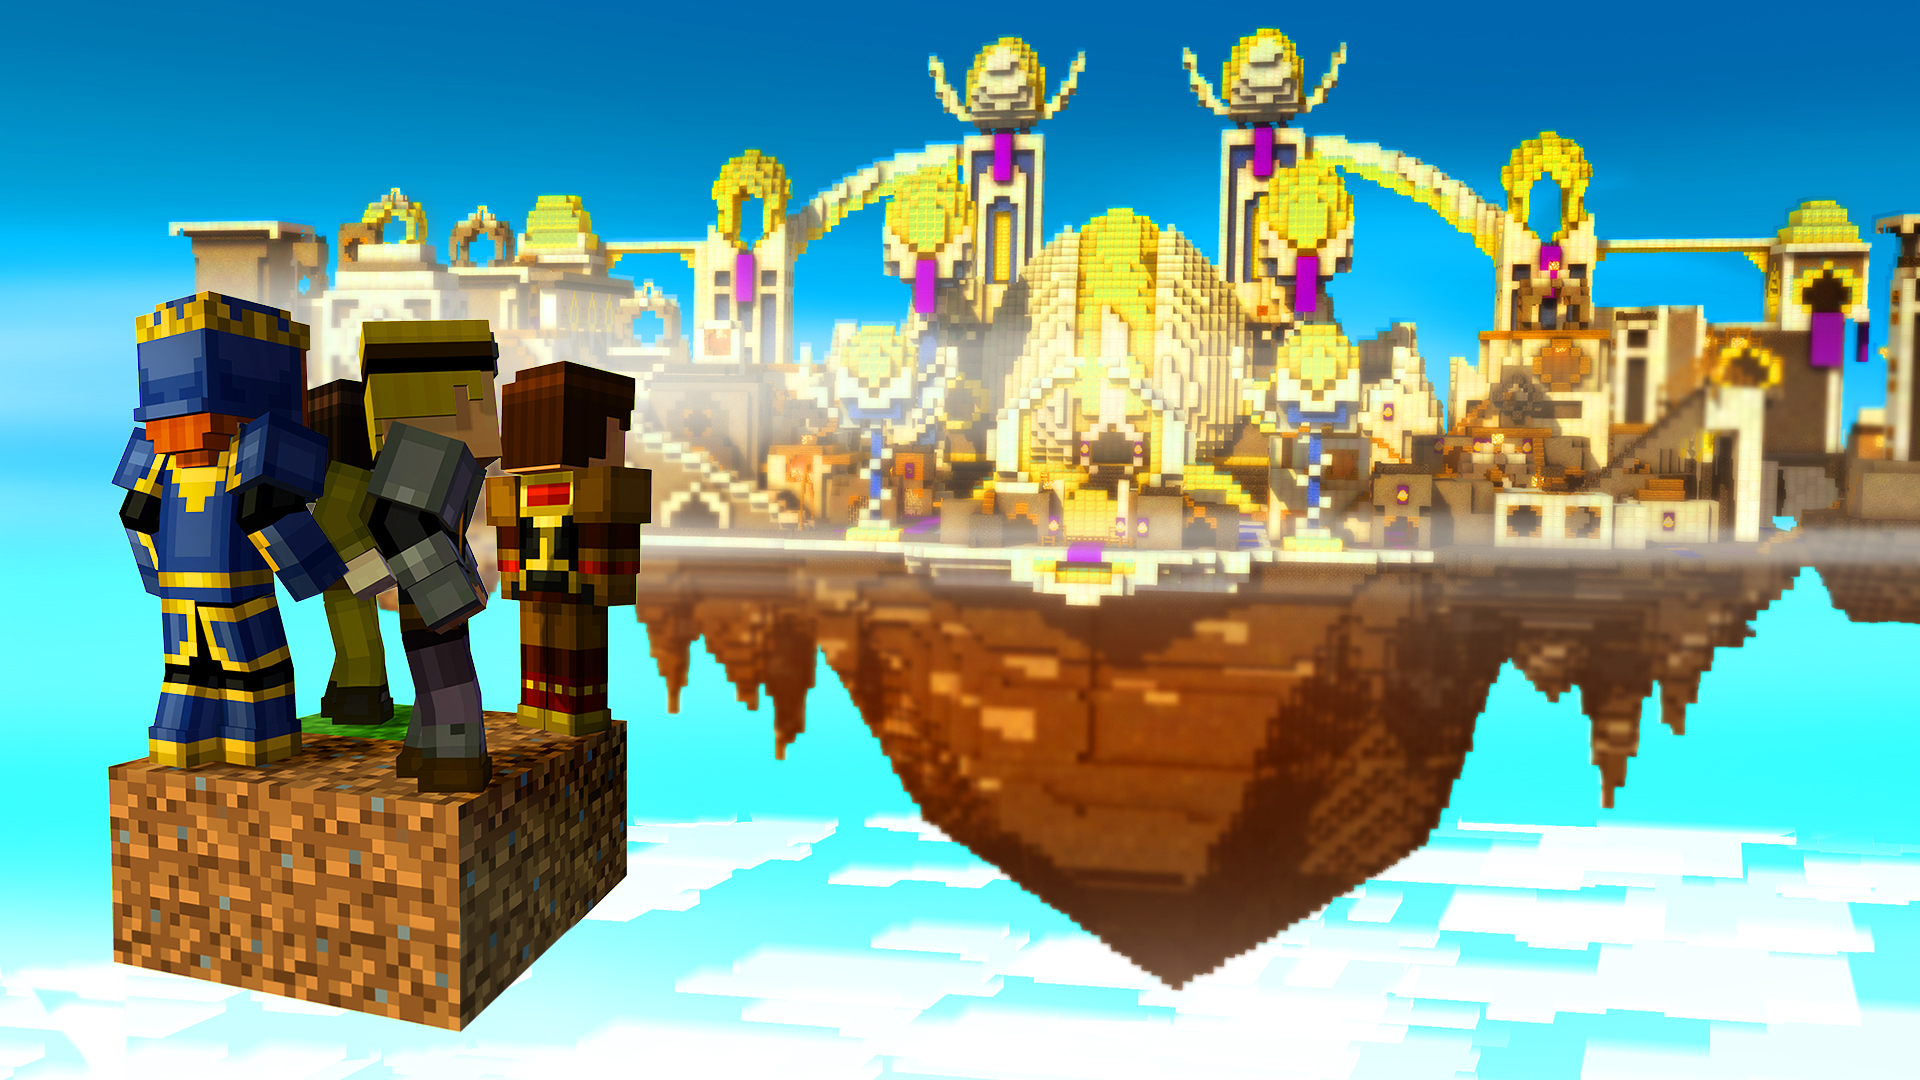 minecraft story mode full apk android download